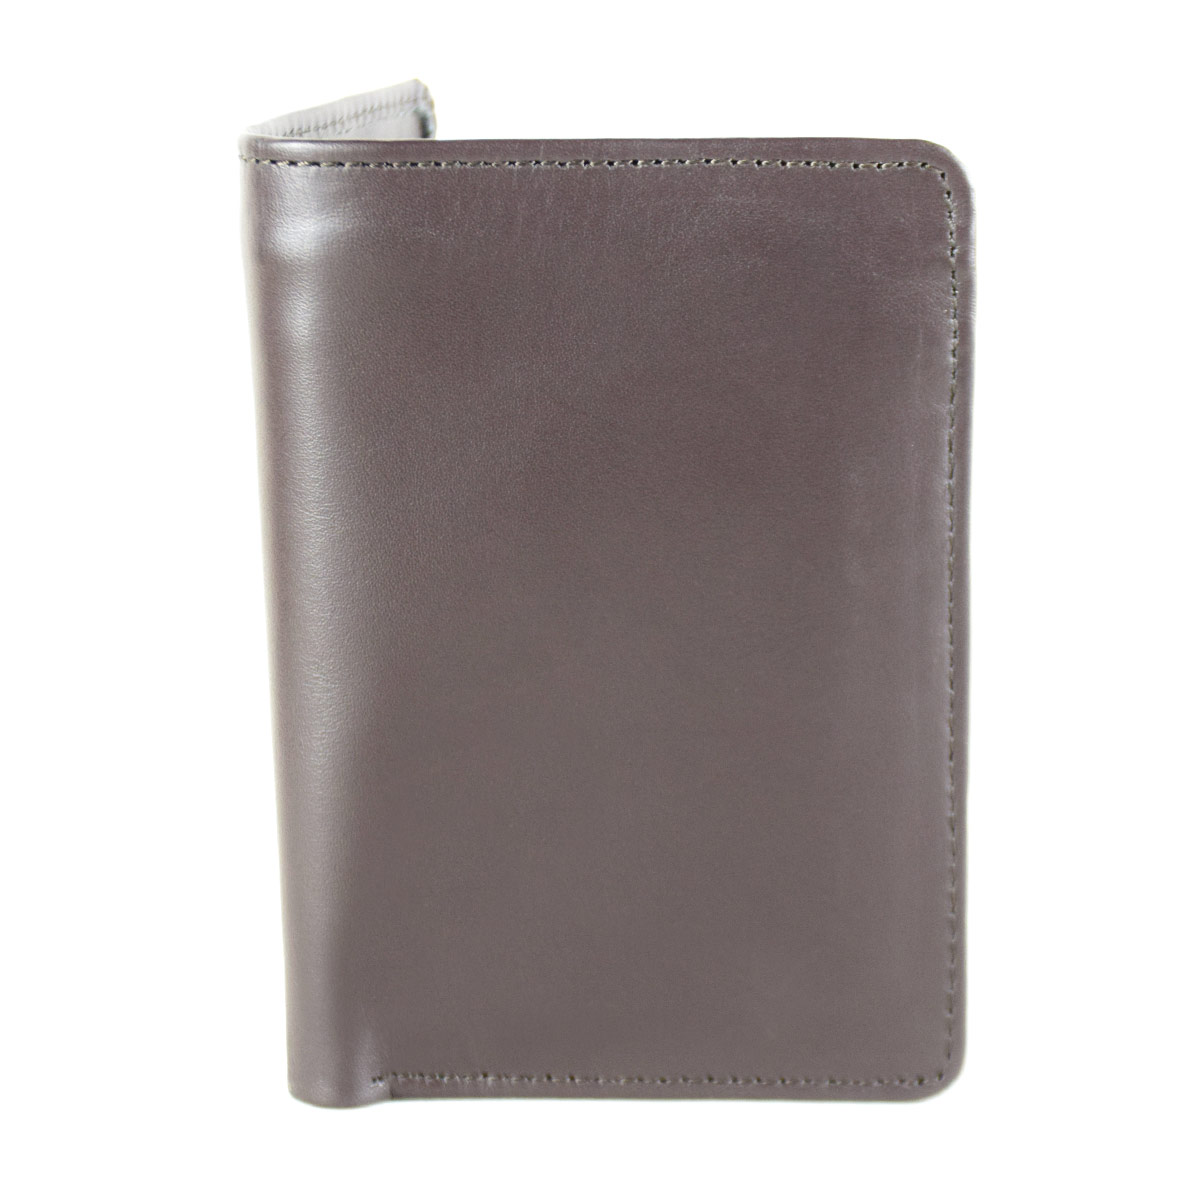 UNIQUE BROWN WALLET WITH SEVERAL POCKETS